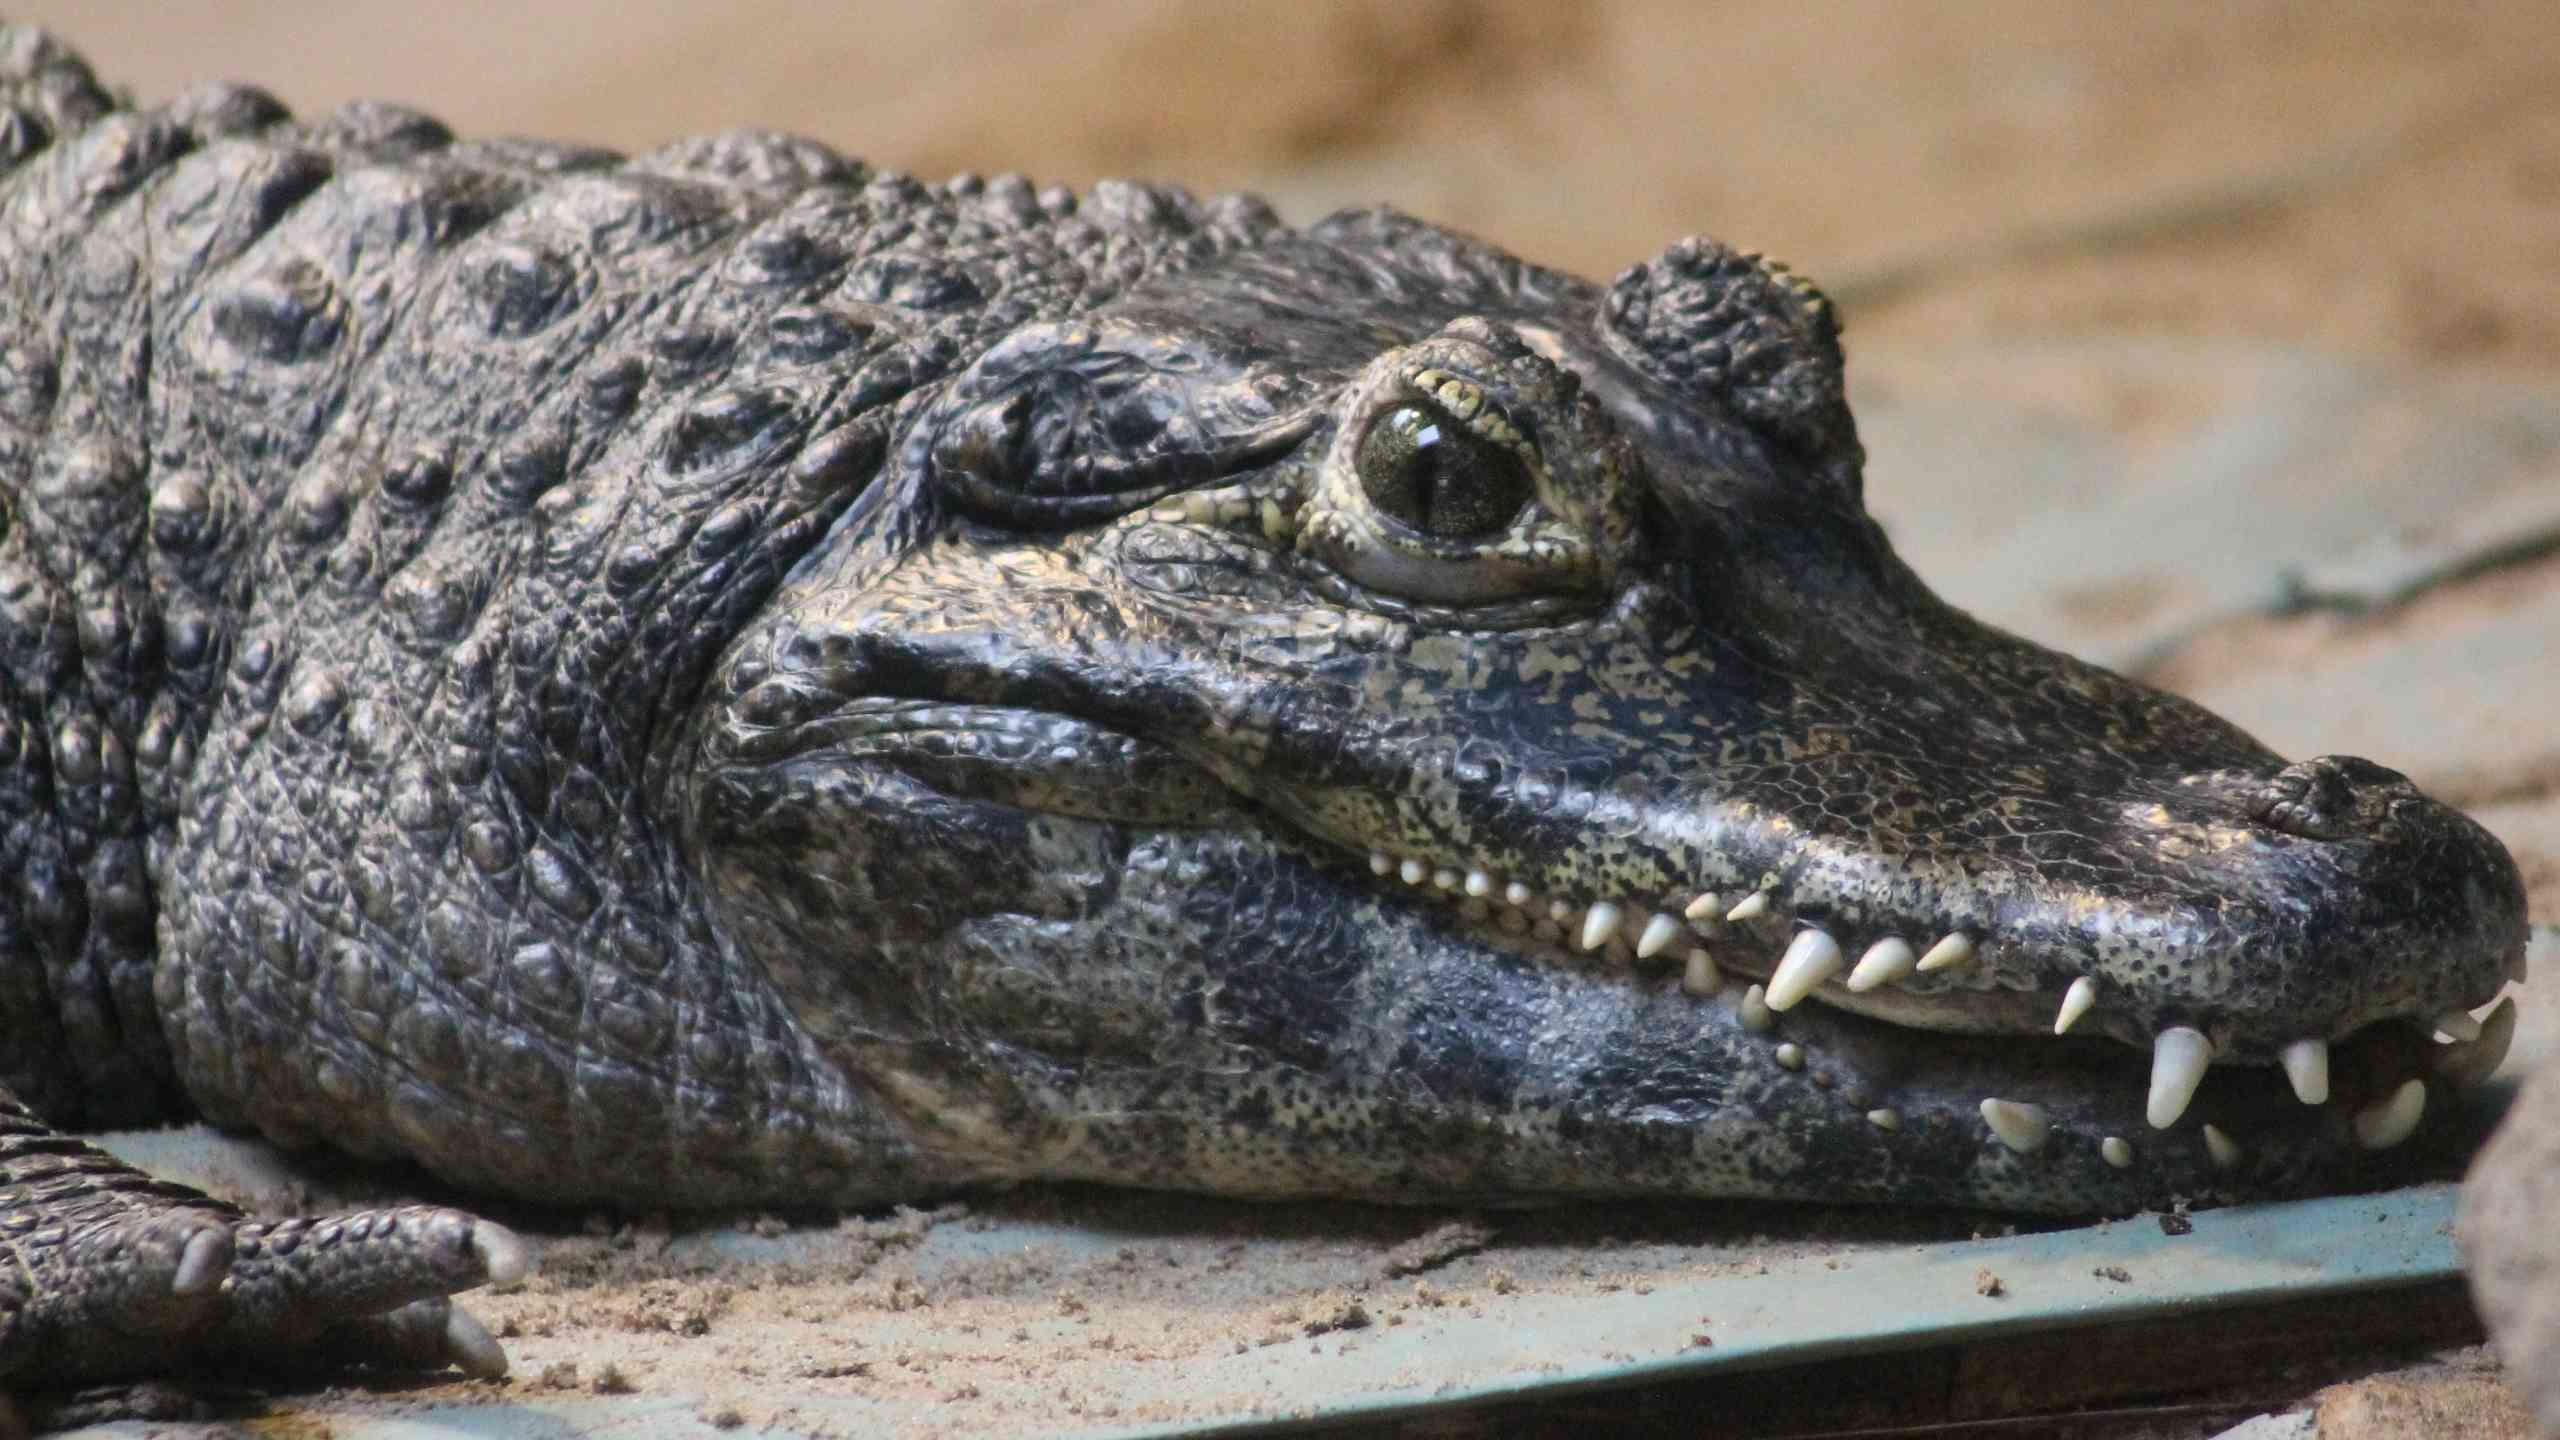 Close-Up Of Alligator At Blackpool Zoo